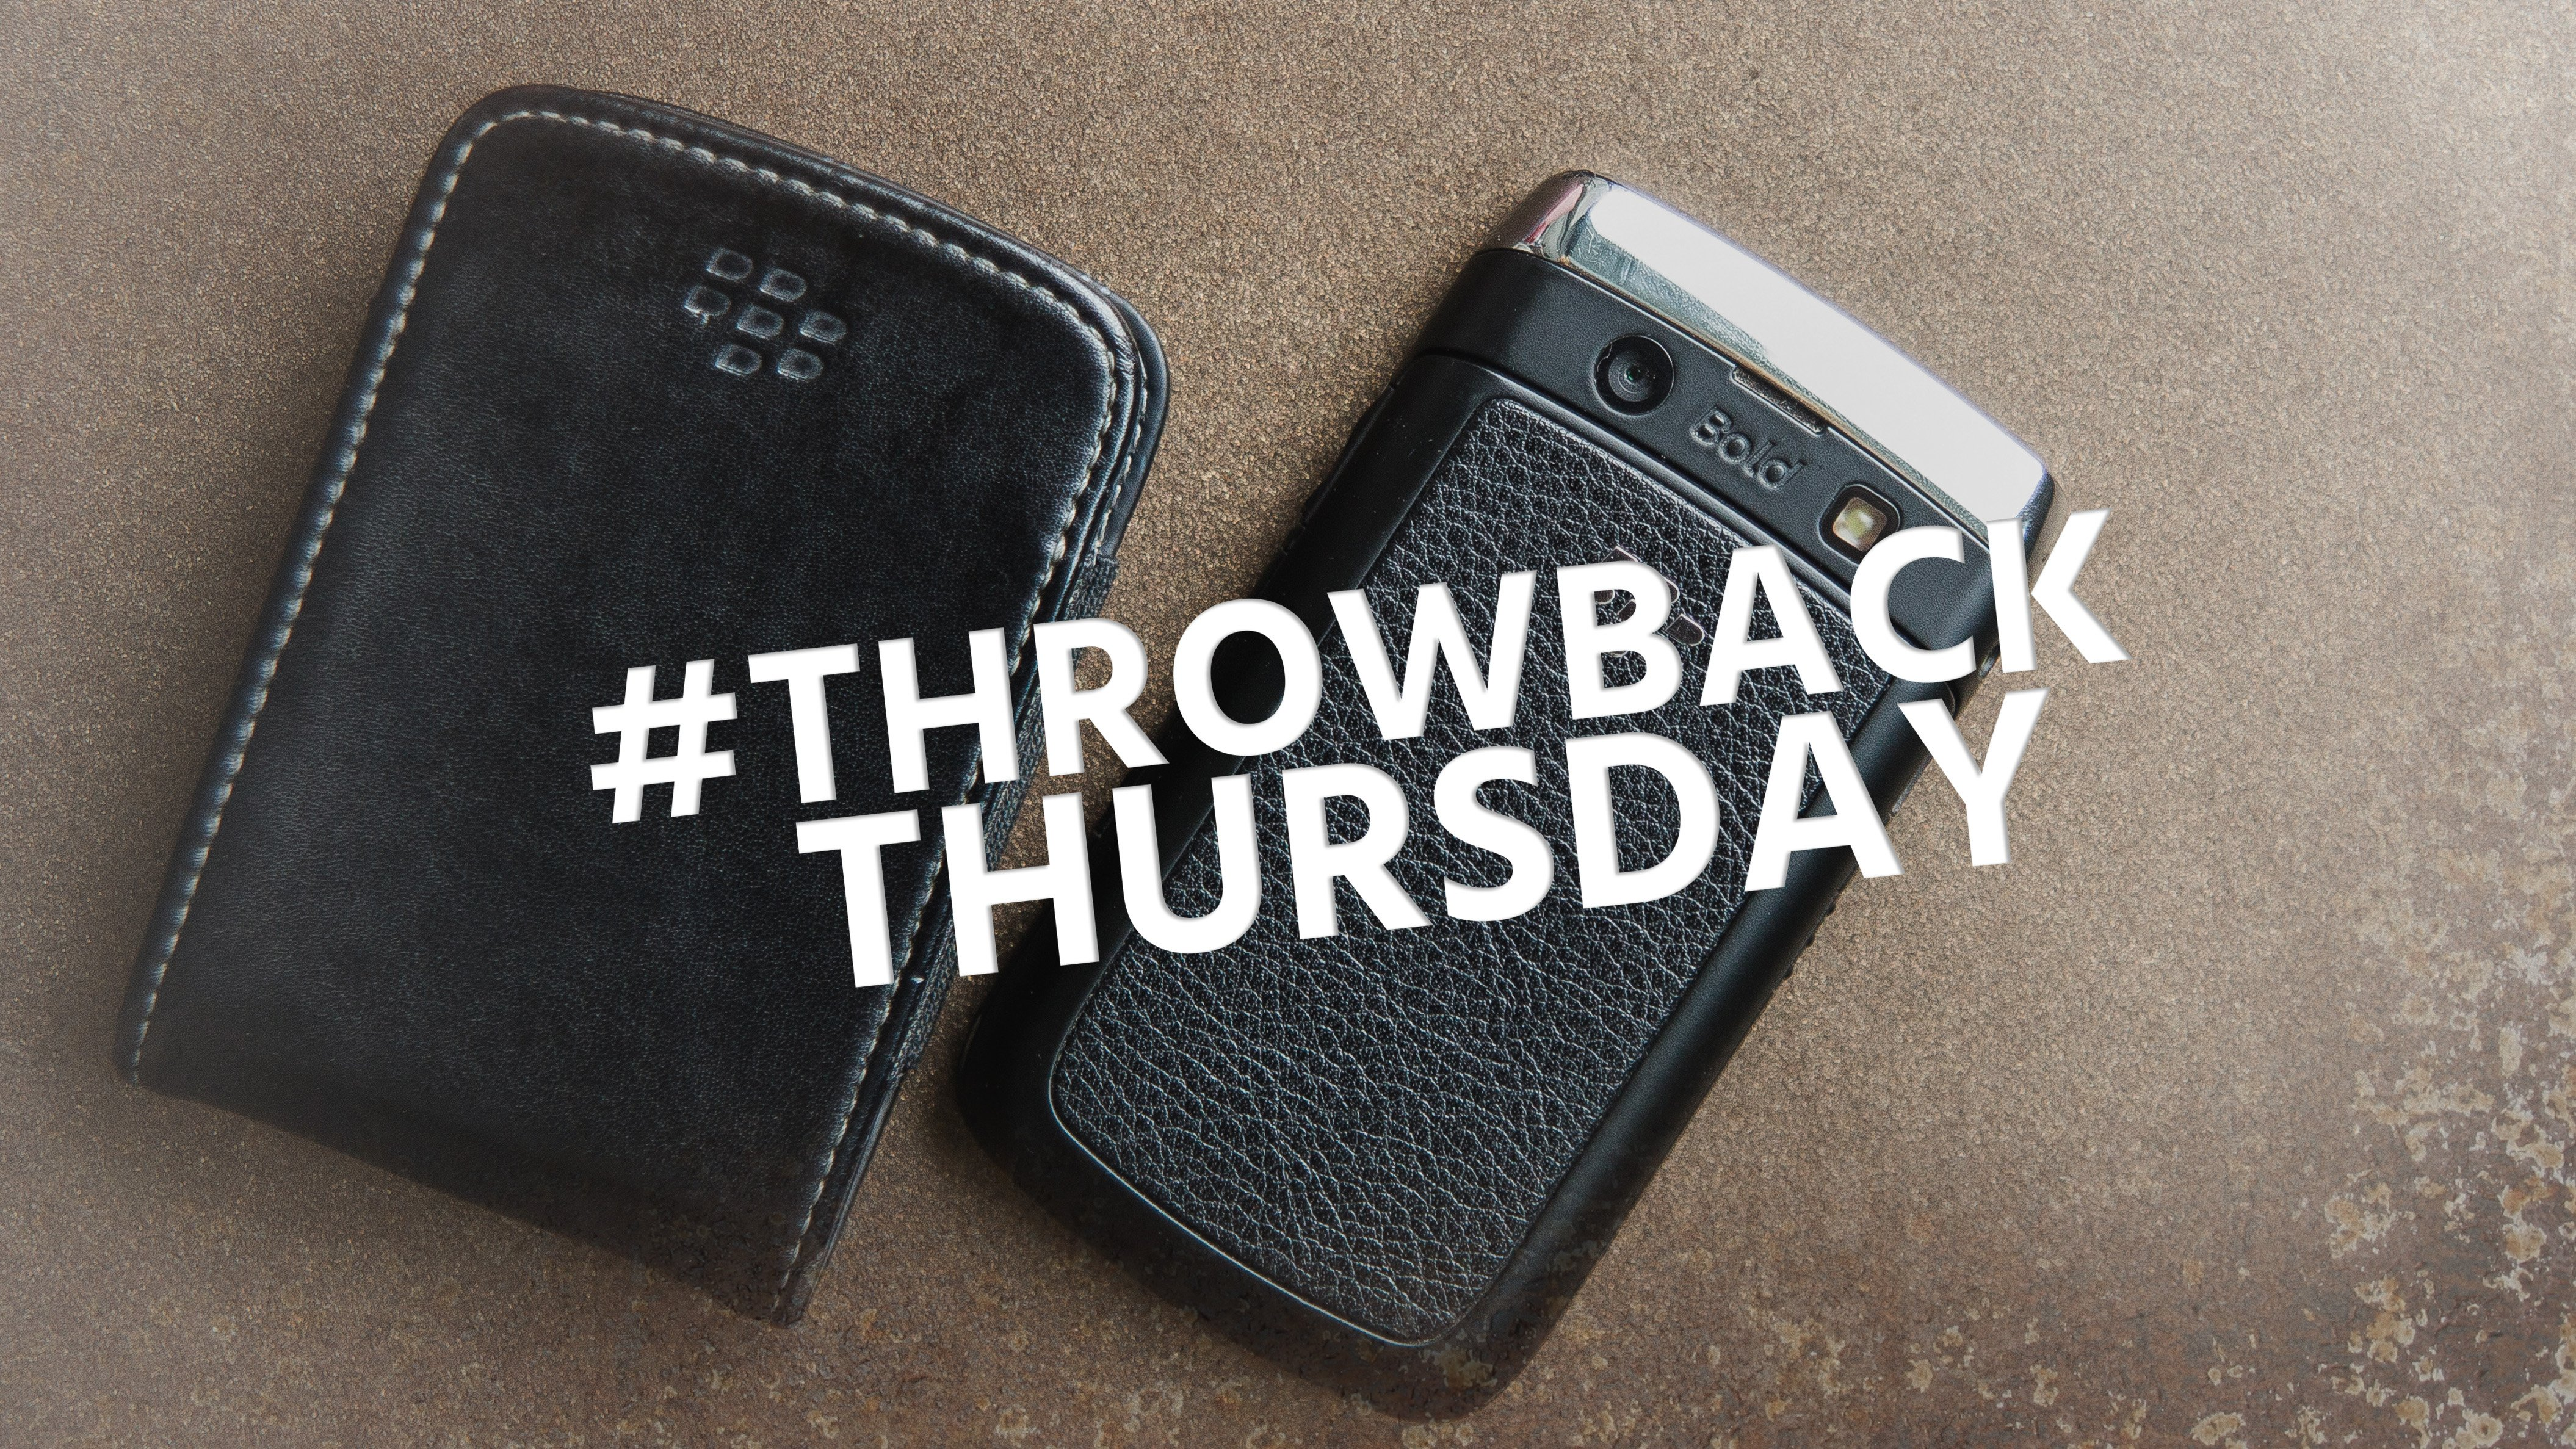 #Throwback Thursday: the BlackBerry Bold 9700 was a smart phone | AndroidPIT